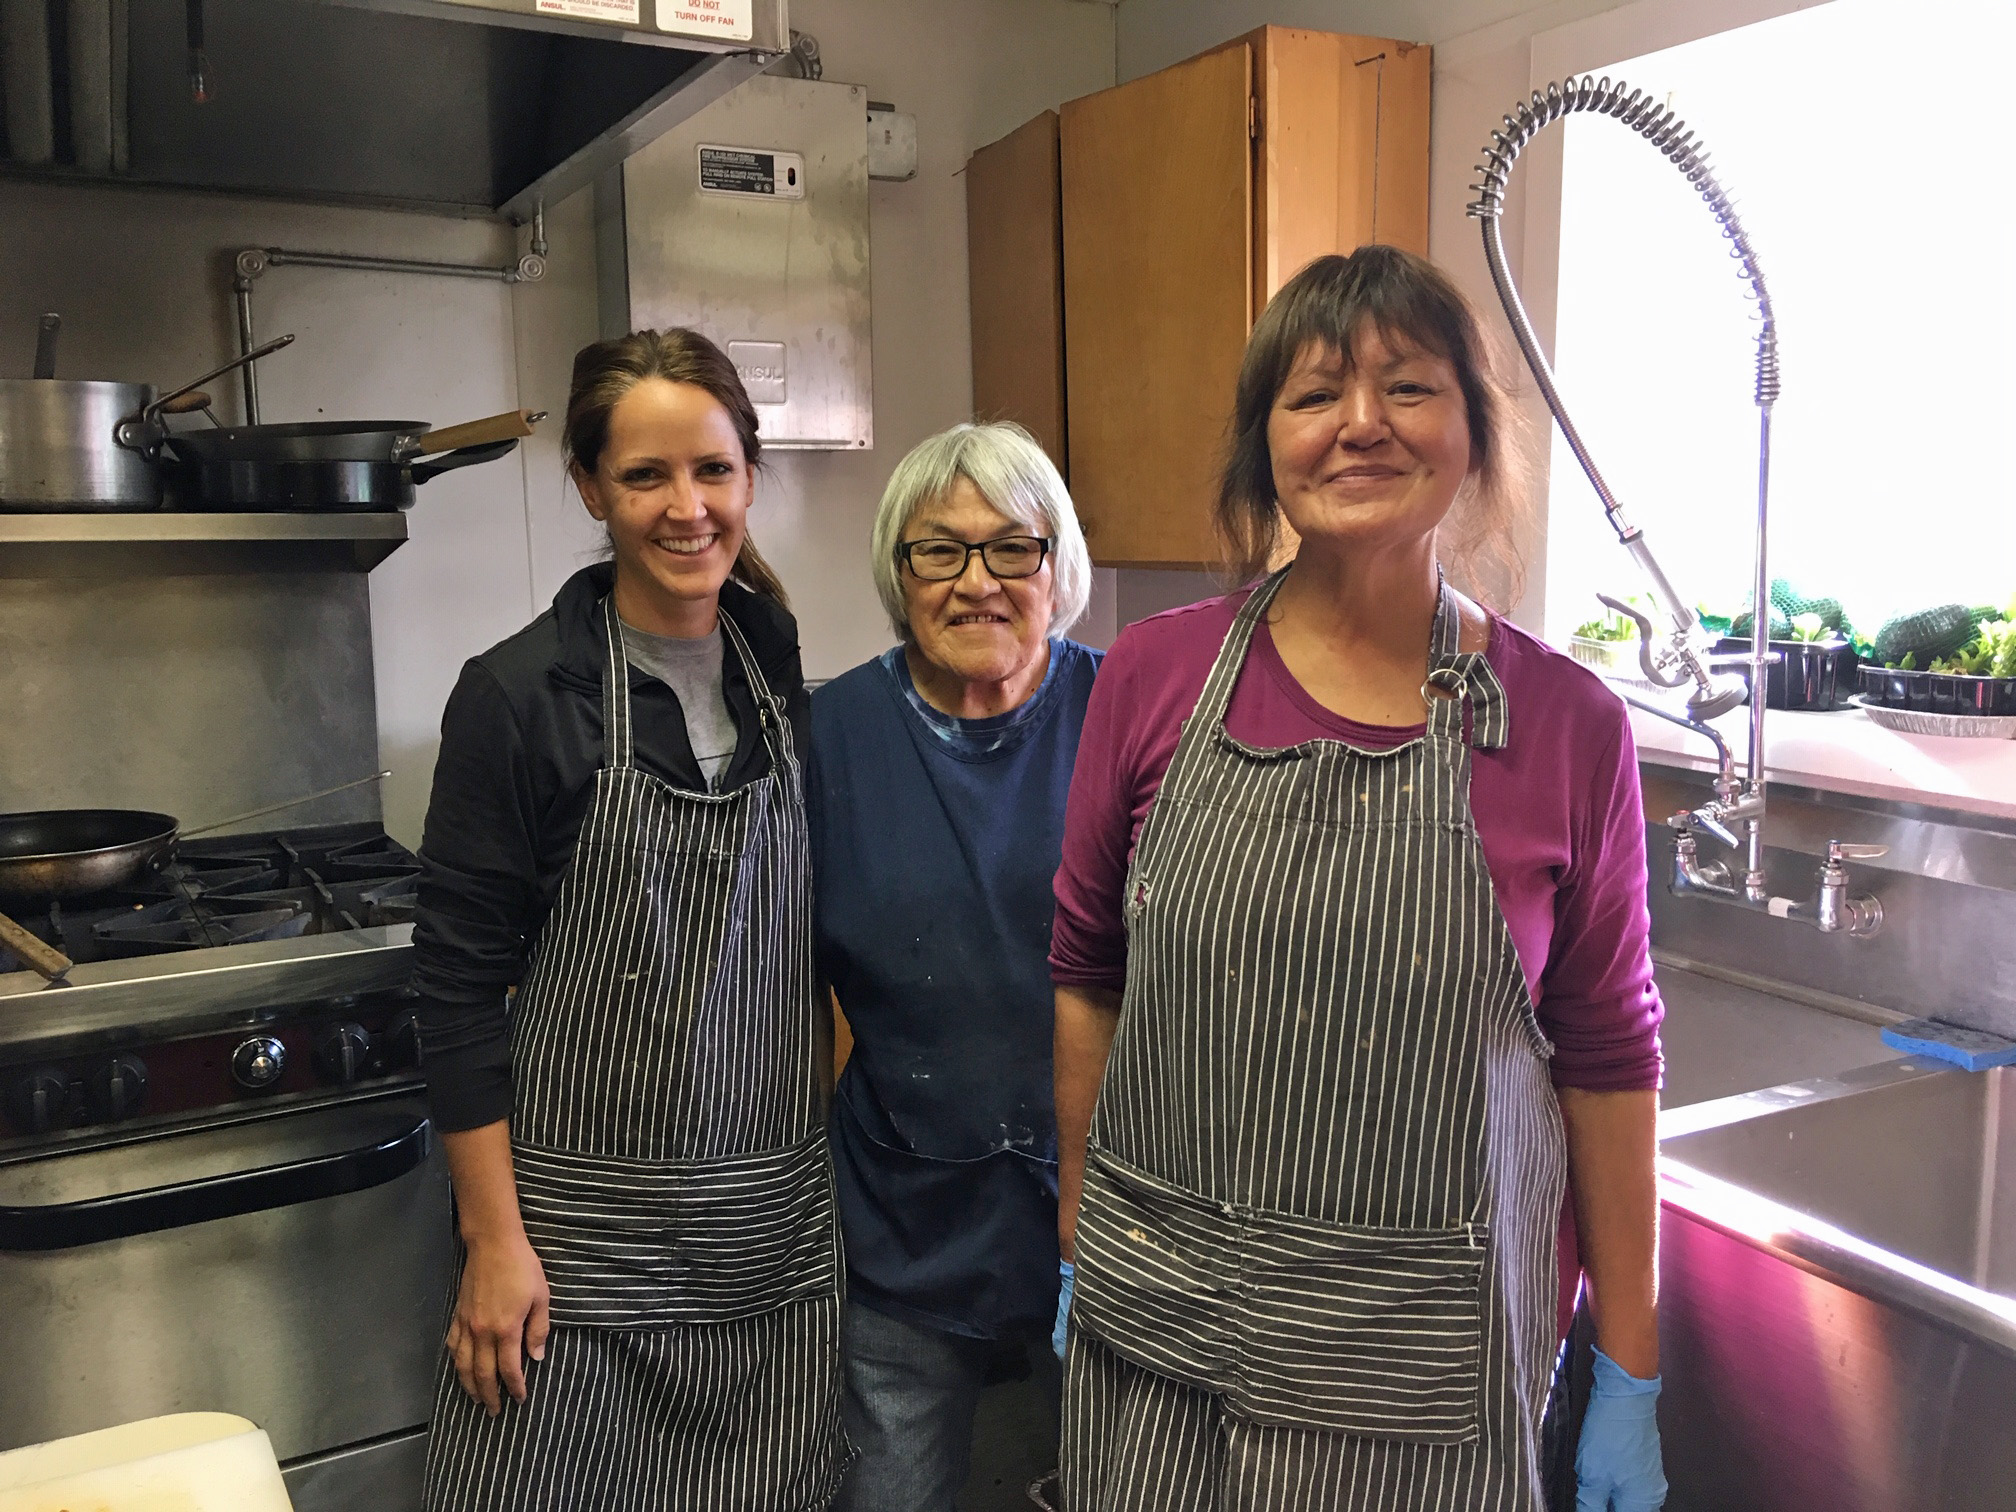 Three women at the Fort Yukon fire station kitchen.